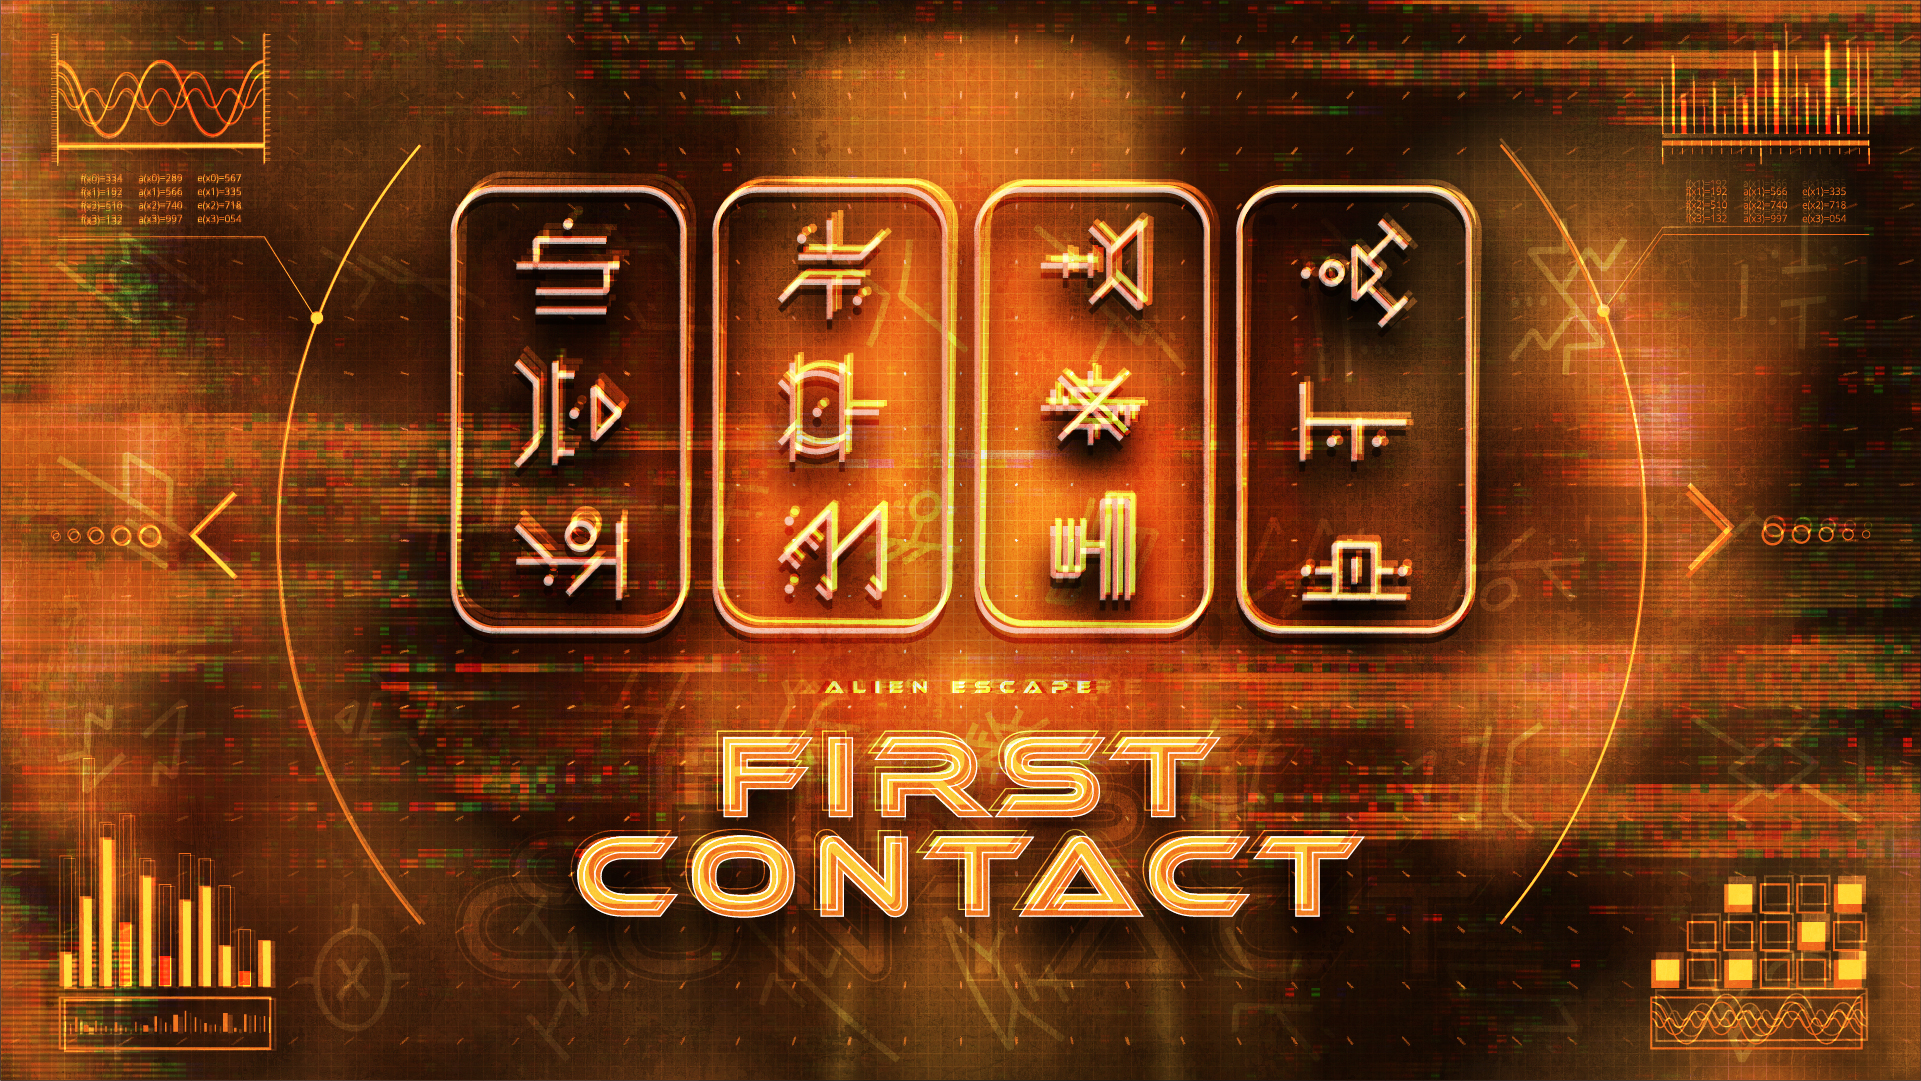 FIRST CONTACT - OPEN NOW AT THE GATEAn unknown alien has landed on Earth. Unfortunately this first contact is not friendly and it is capturing humans for sport. You wake up in a containment chamber and must escape before the alien returns and skins you as yet another trophy.